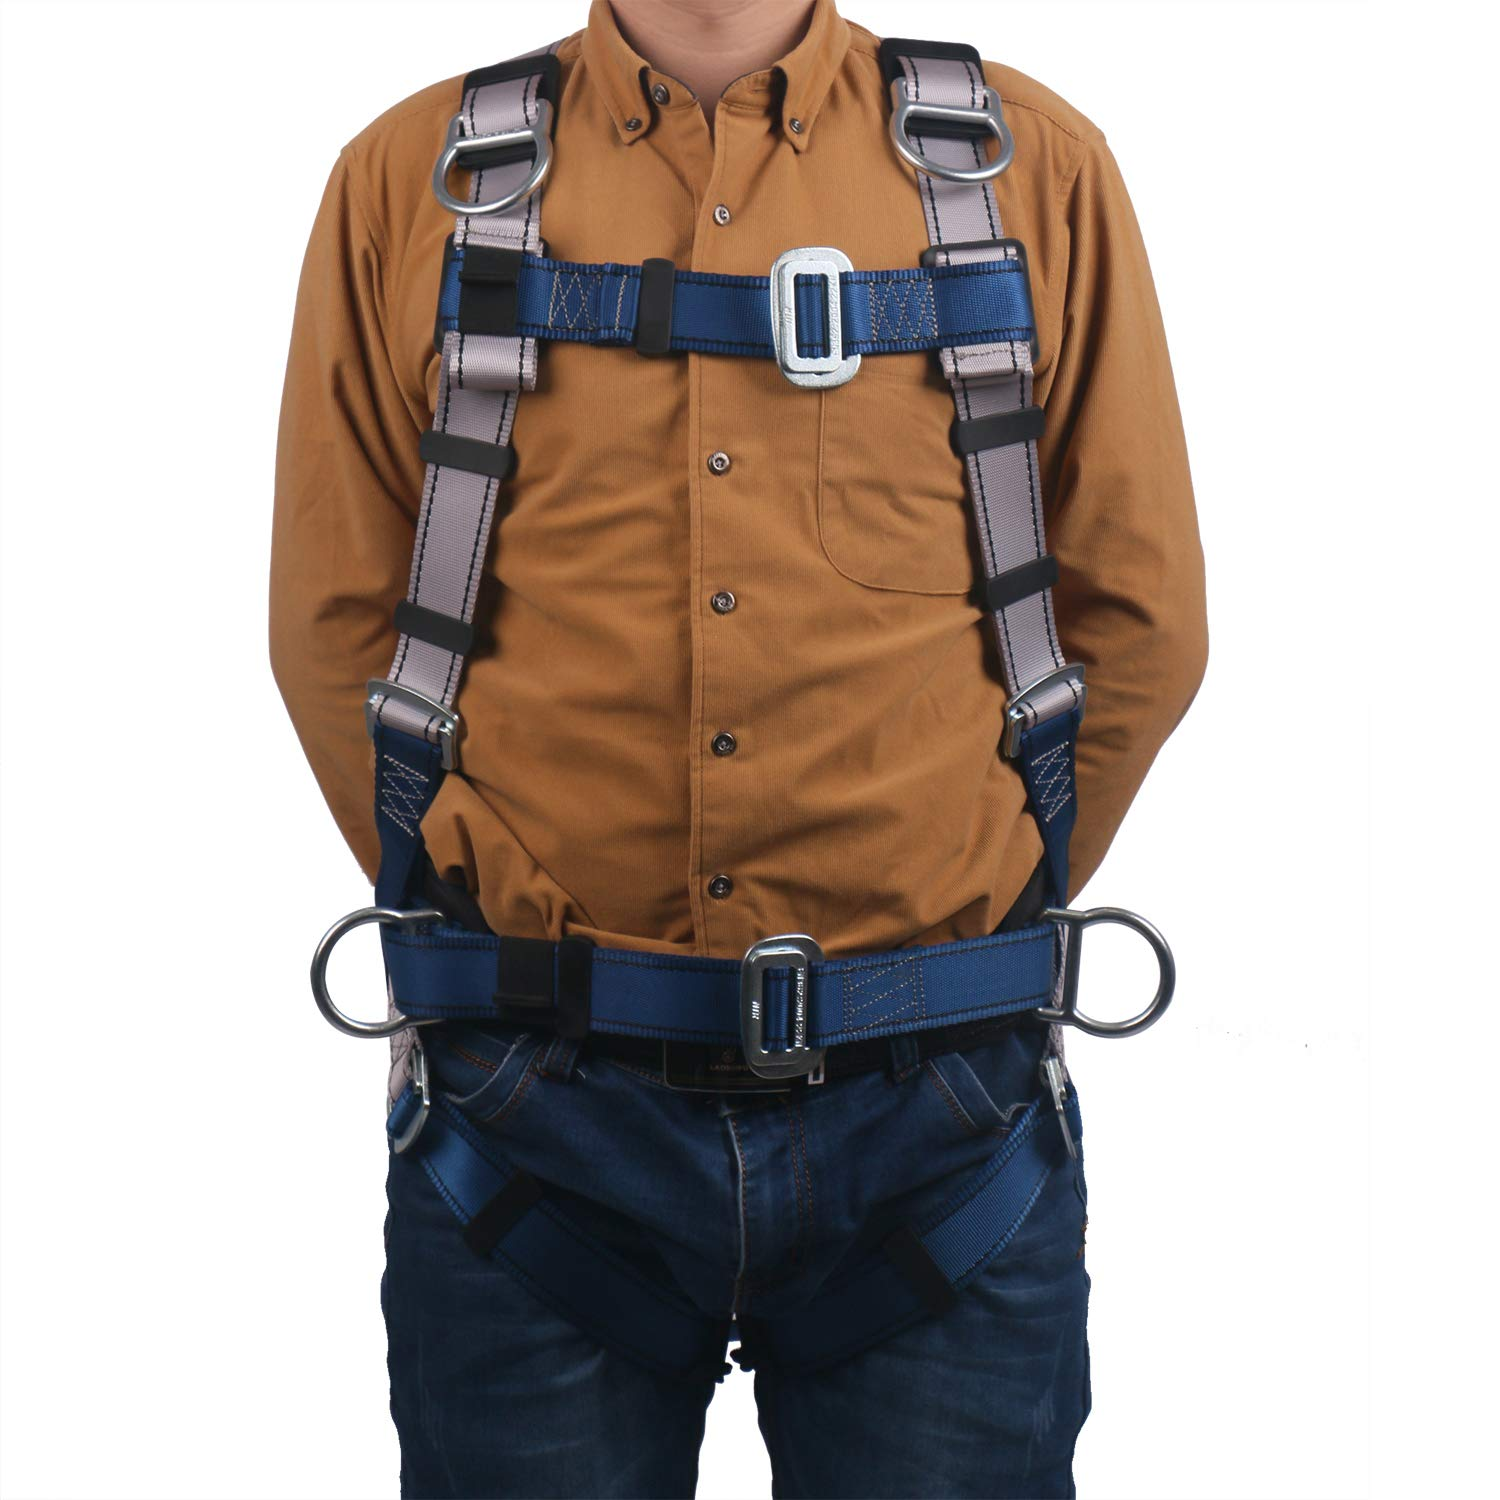 JINGYAT Full Body Safety Harness Fall Protection with 5 D-Ring,Universal Personal Protective Equipment (130-310 pound),Construction Industrial Tower Roofing Tool by JINGYAT (Image #5)